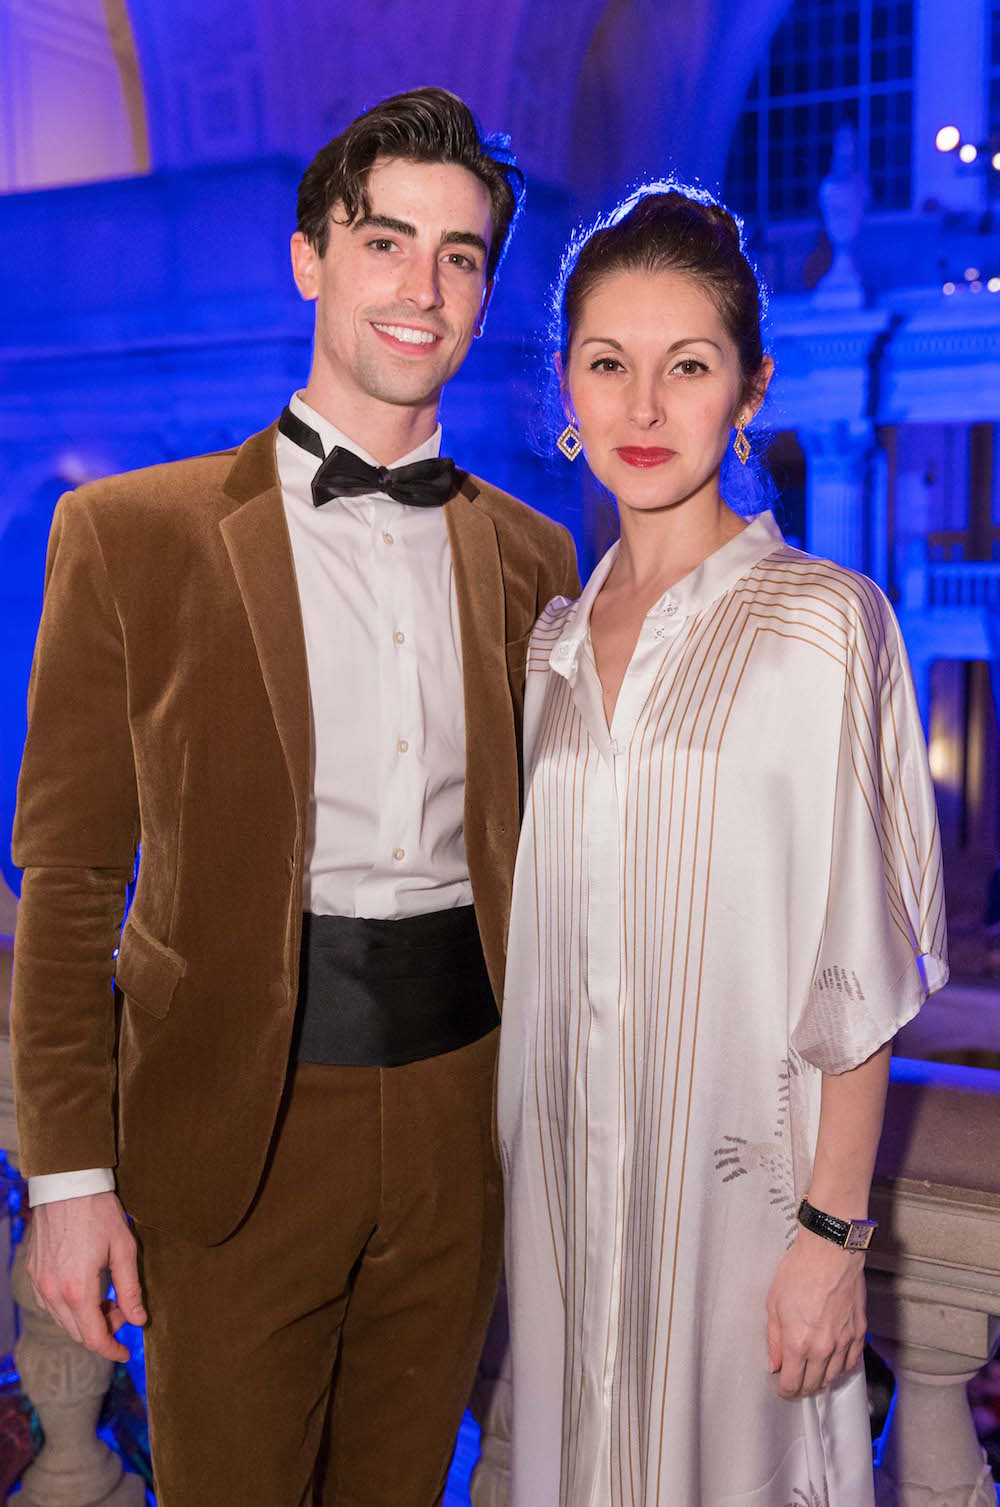 Joseph Walsh and Lauren Strongin at the 2016 opening night gala's after party